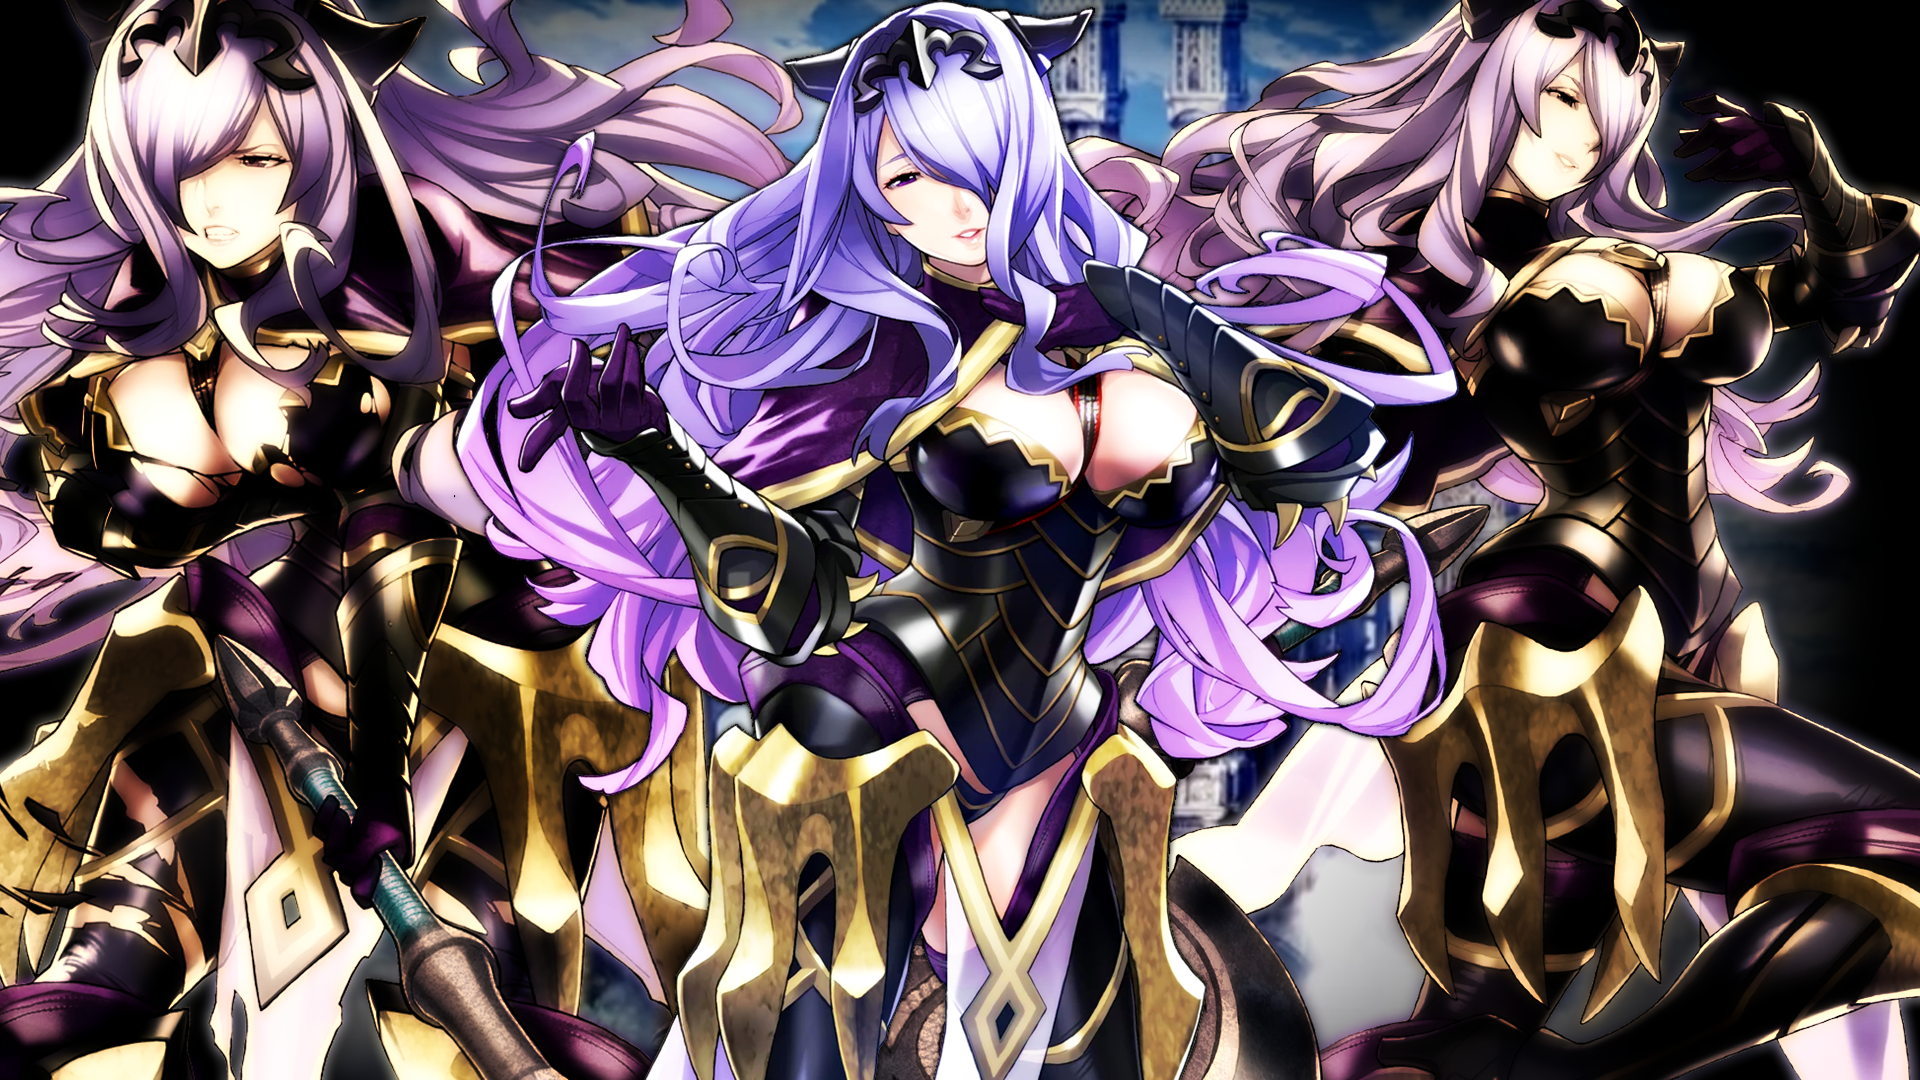 Fire Emblem Heroes Camilla Wallpaper By Auroramaster On Deviantart